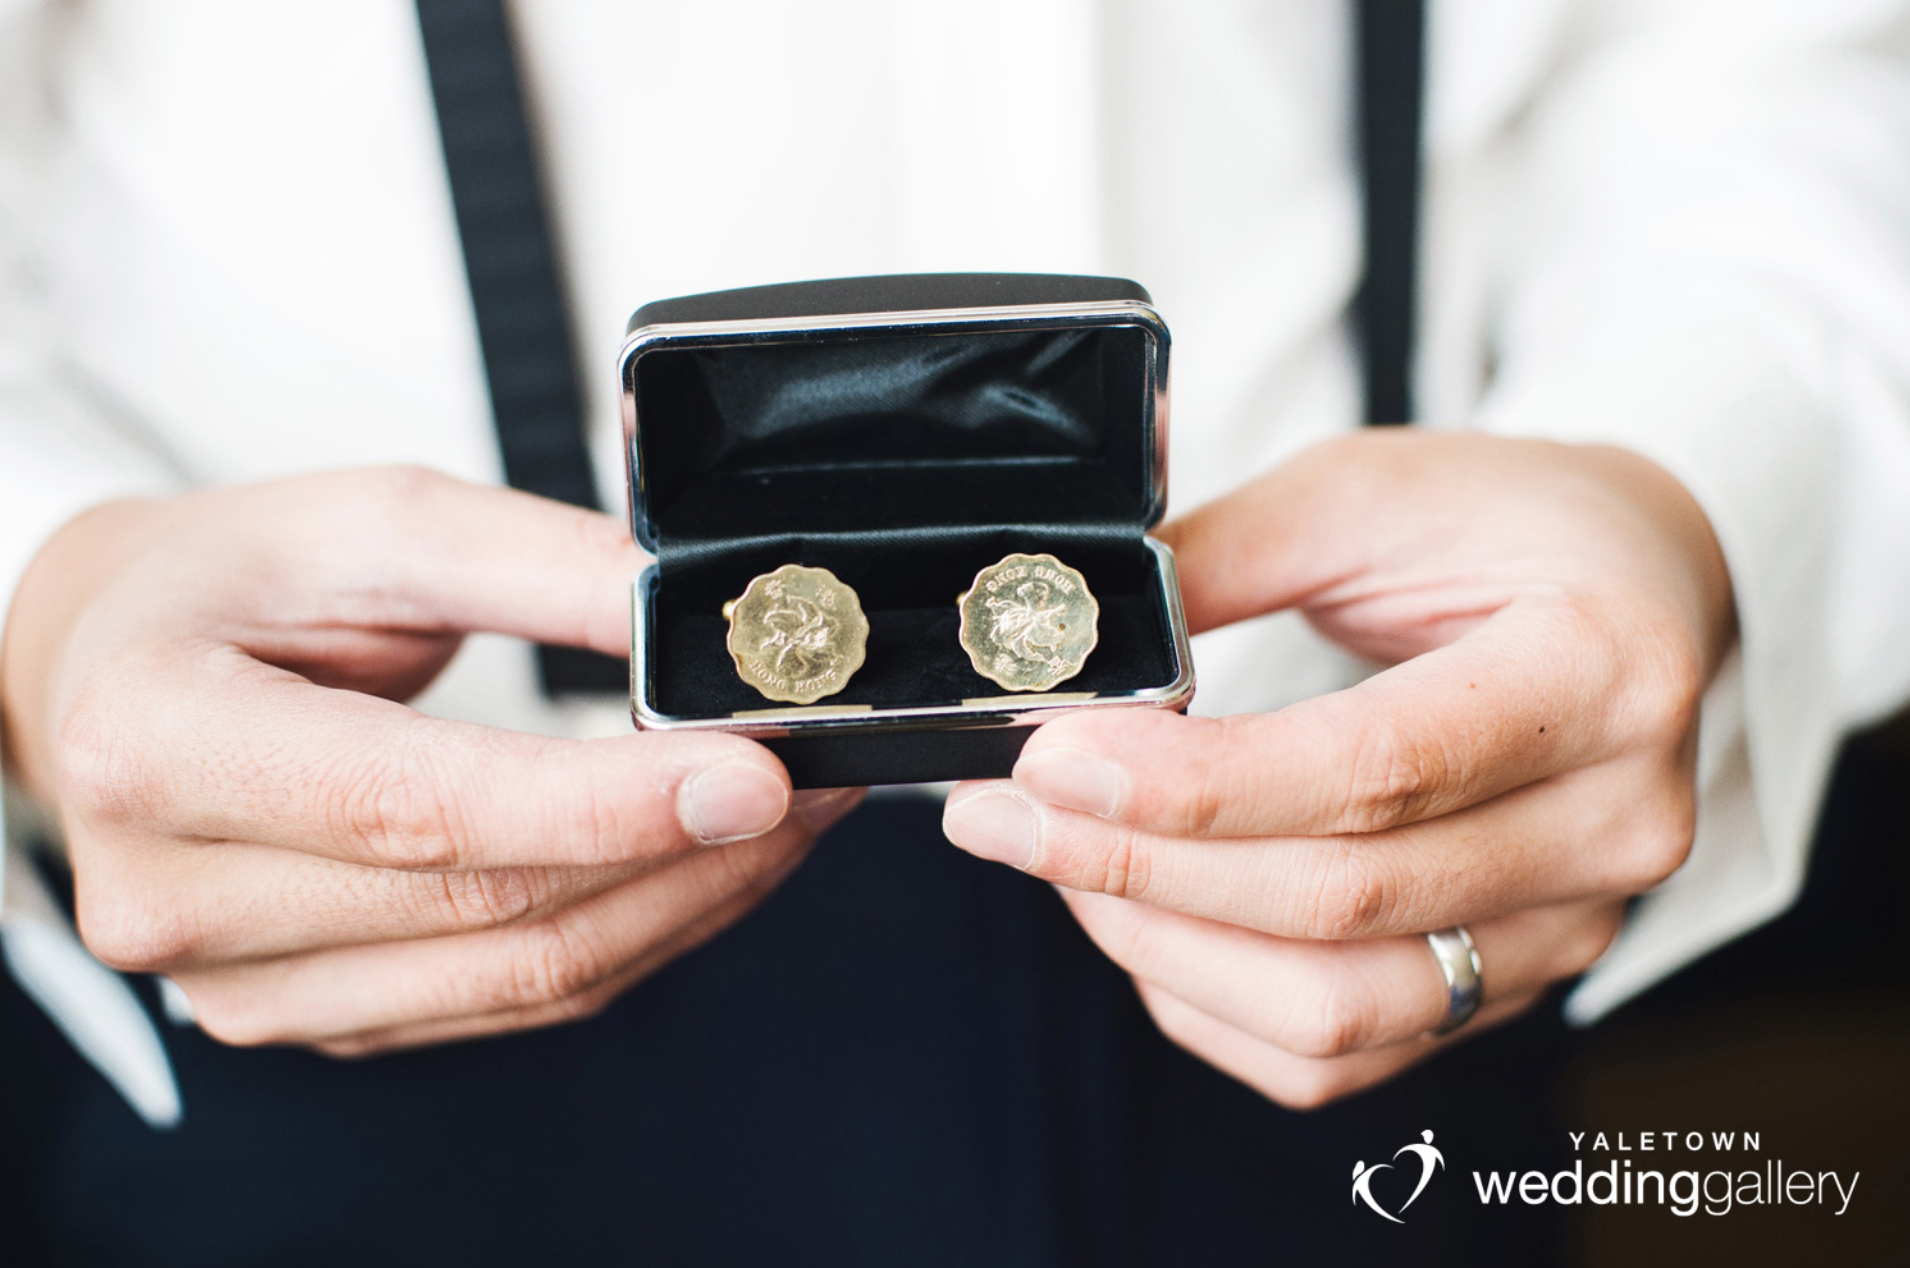 groom-cufflinks-asian-chinese-coins-wedding-yaletown-wedding-gallery-vancouver-wedding-photographers-vancouver-wedding-photo